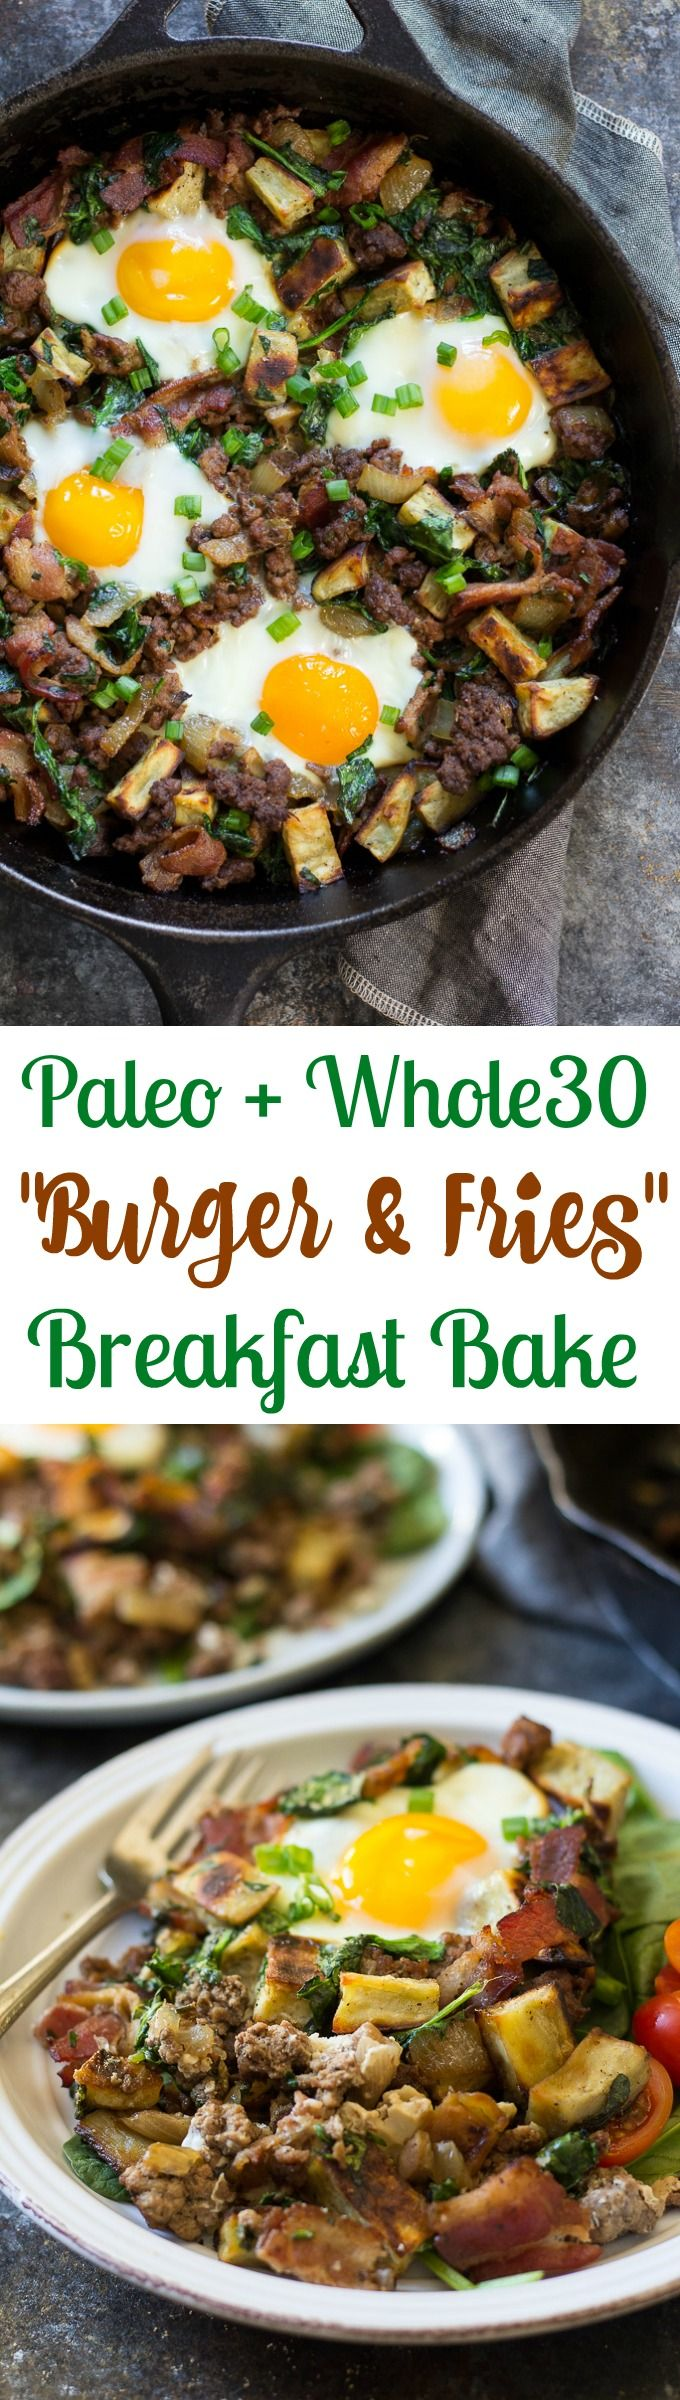 "This ""bacon burger & fries"" Paleo breakfast bake combines savory, crispy bacon, grass-fed ground beef and crispy sweet potatoes with greens and baked eggs. Whole30 friendly, good for any meal, gluten free, dairy free."